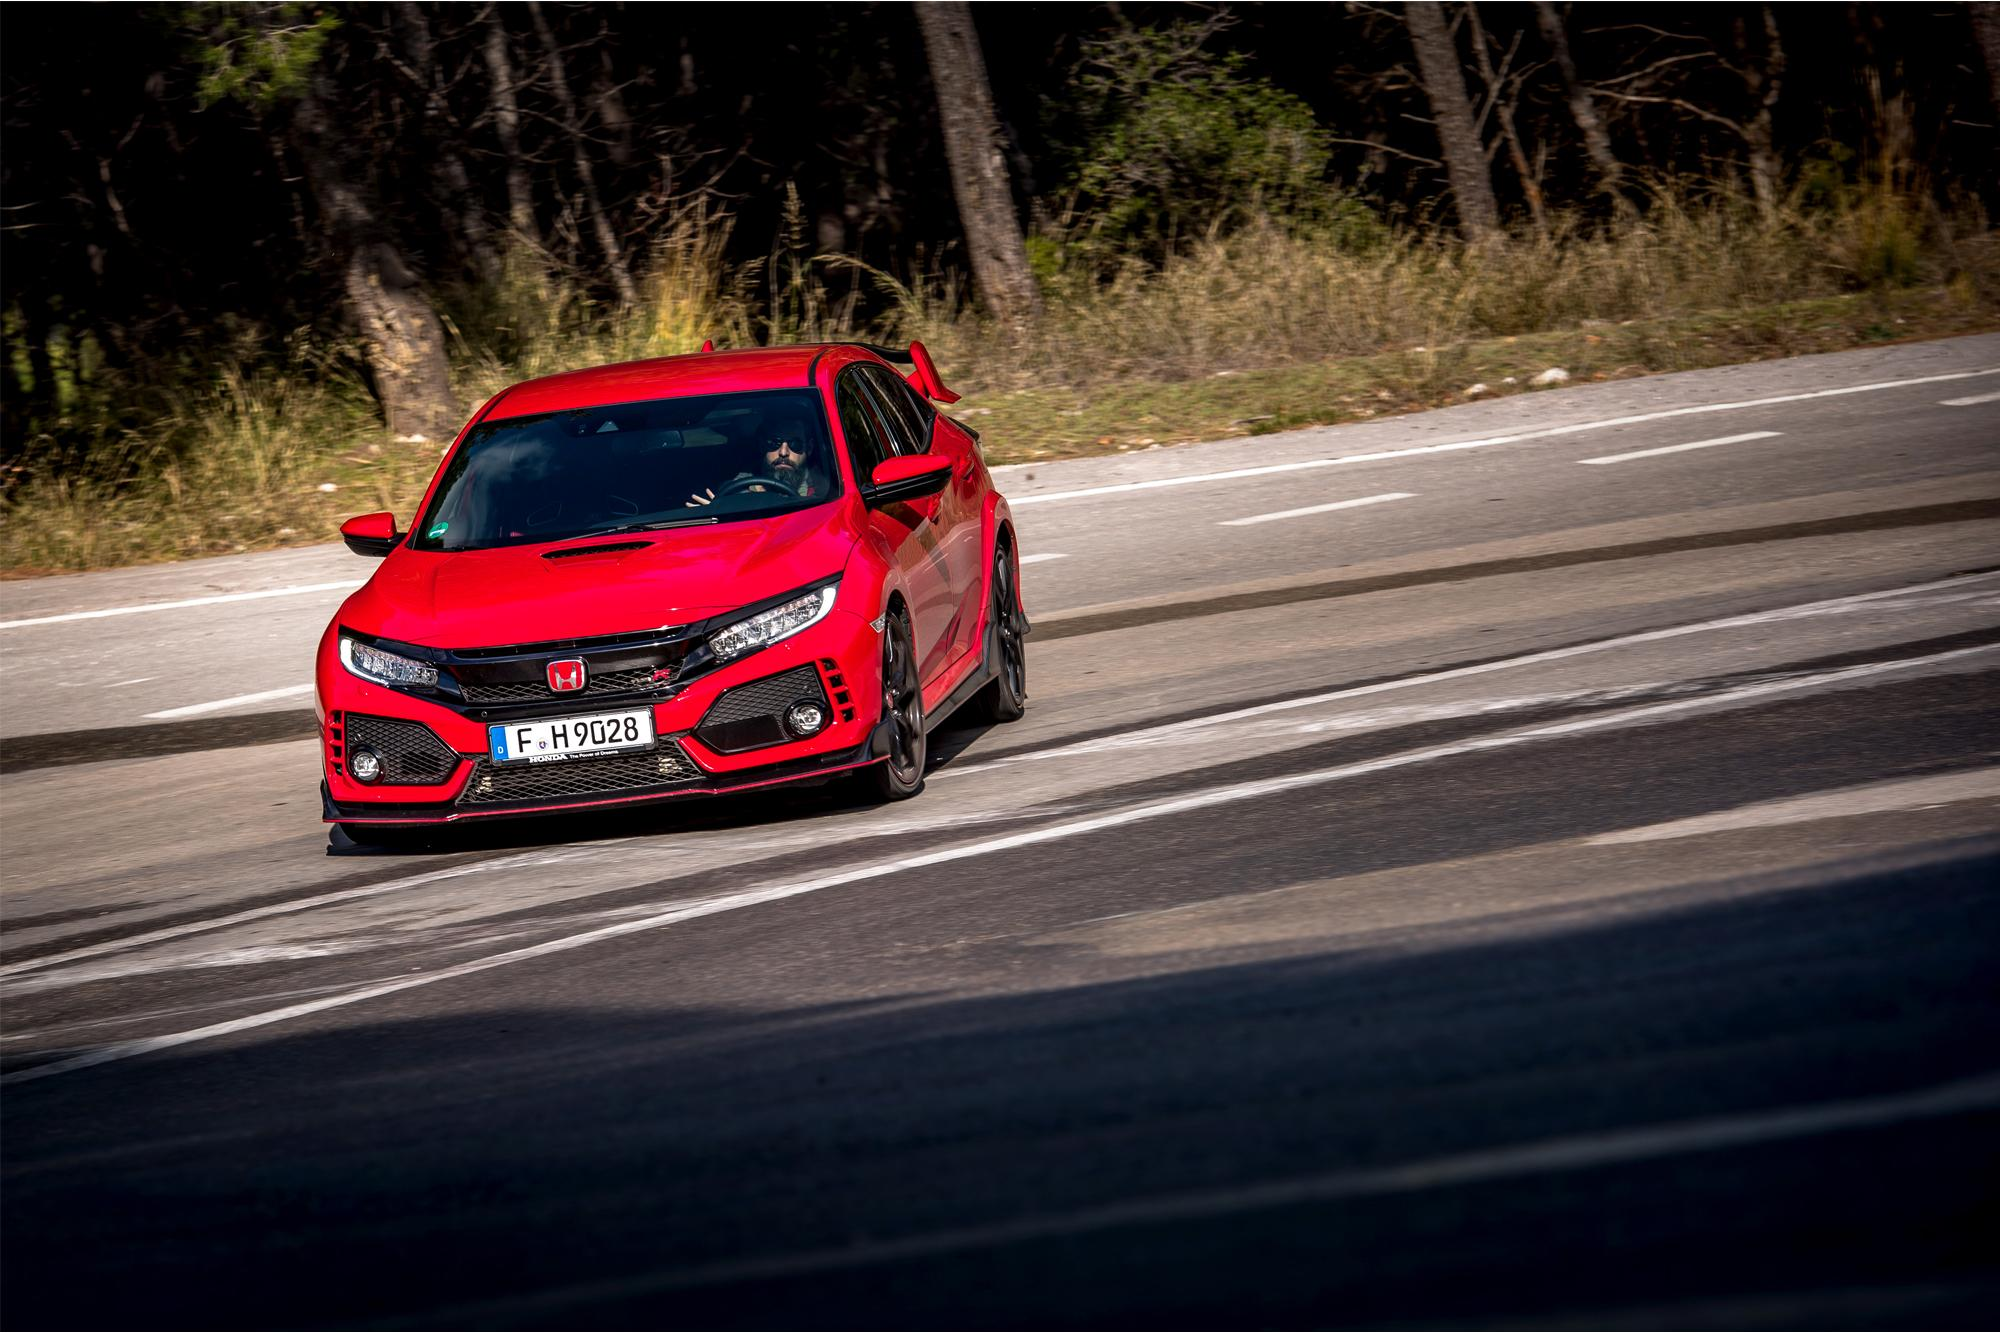 Honda Civic Type R FK8 320Ps